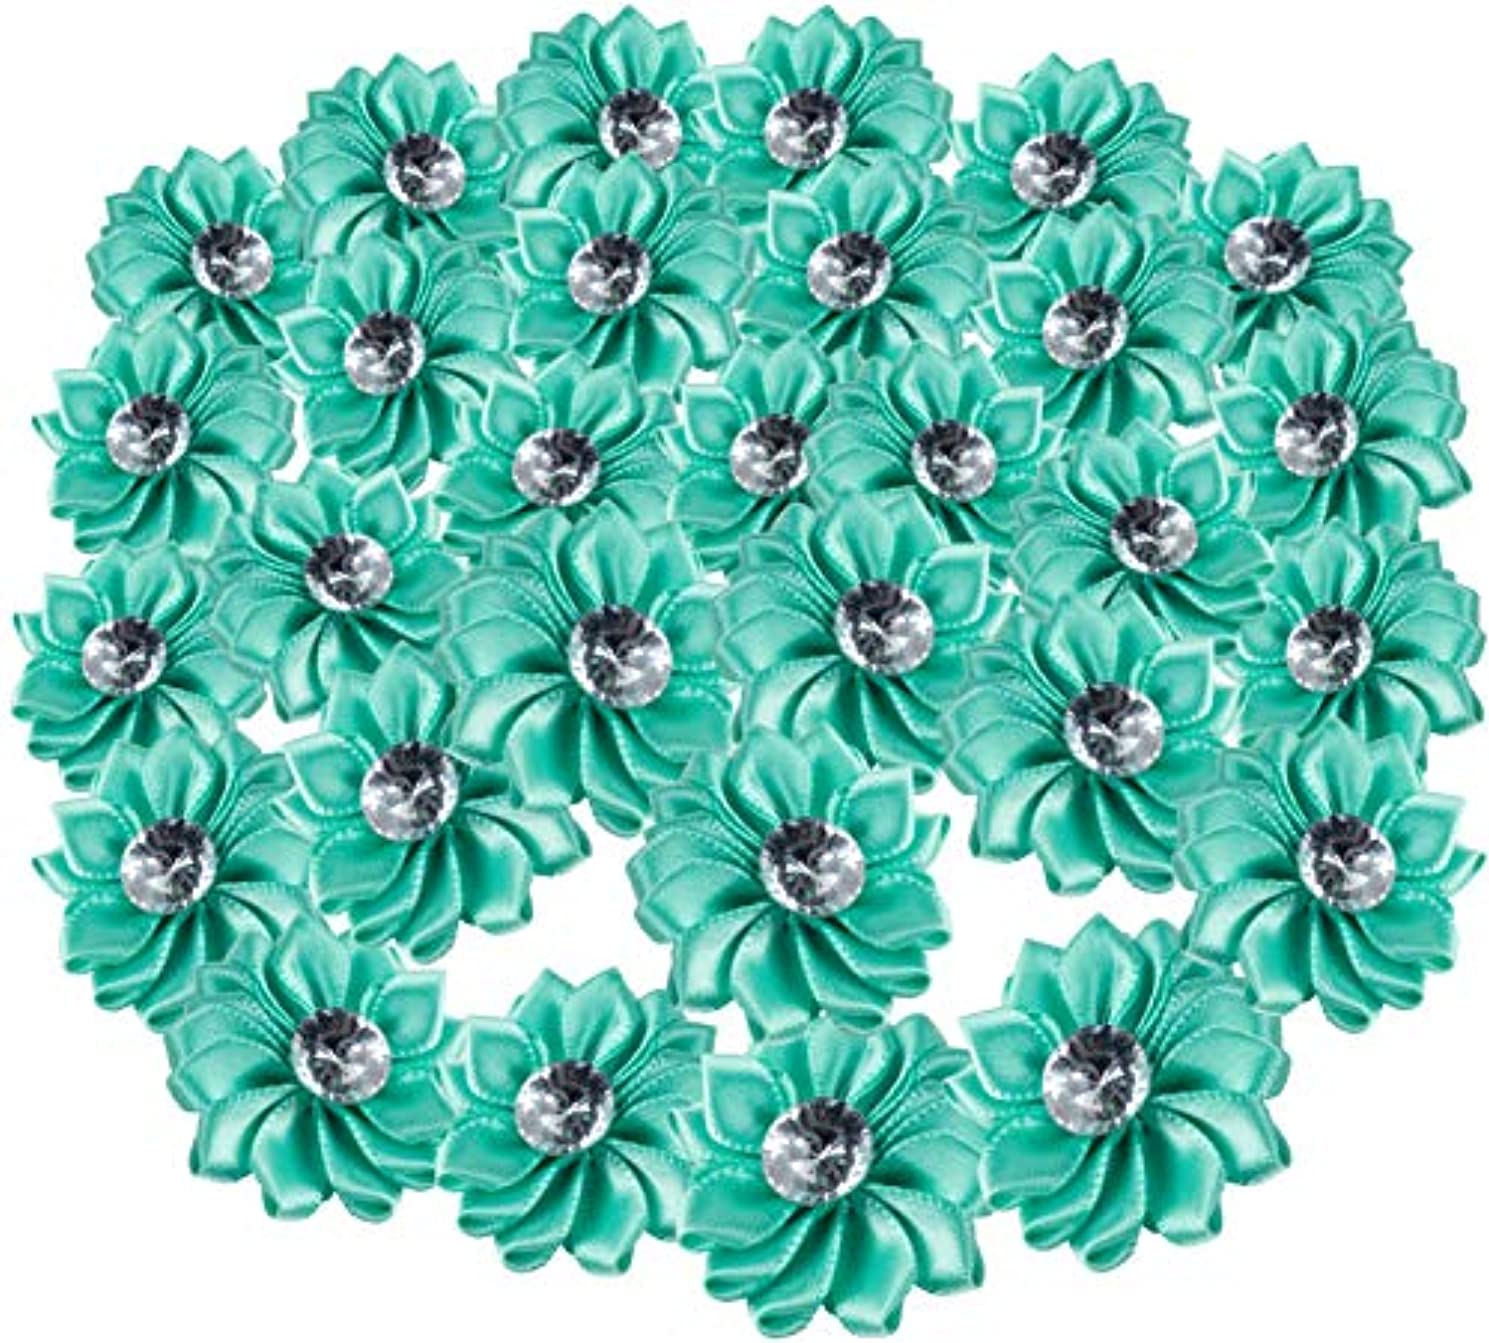 Craft Flowers - 60-Pack Flower Embellishments with Rhinestone, 1.5-Inch Turquoise Satin Ribbon Fabric Flowers for Craft, DIY Wedding Decorations, Ornaments